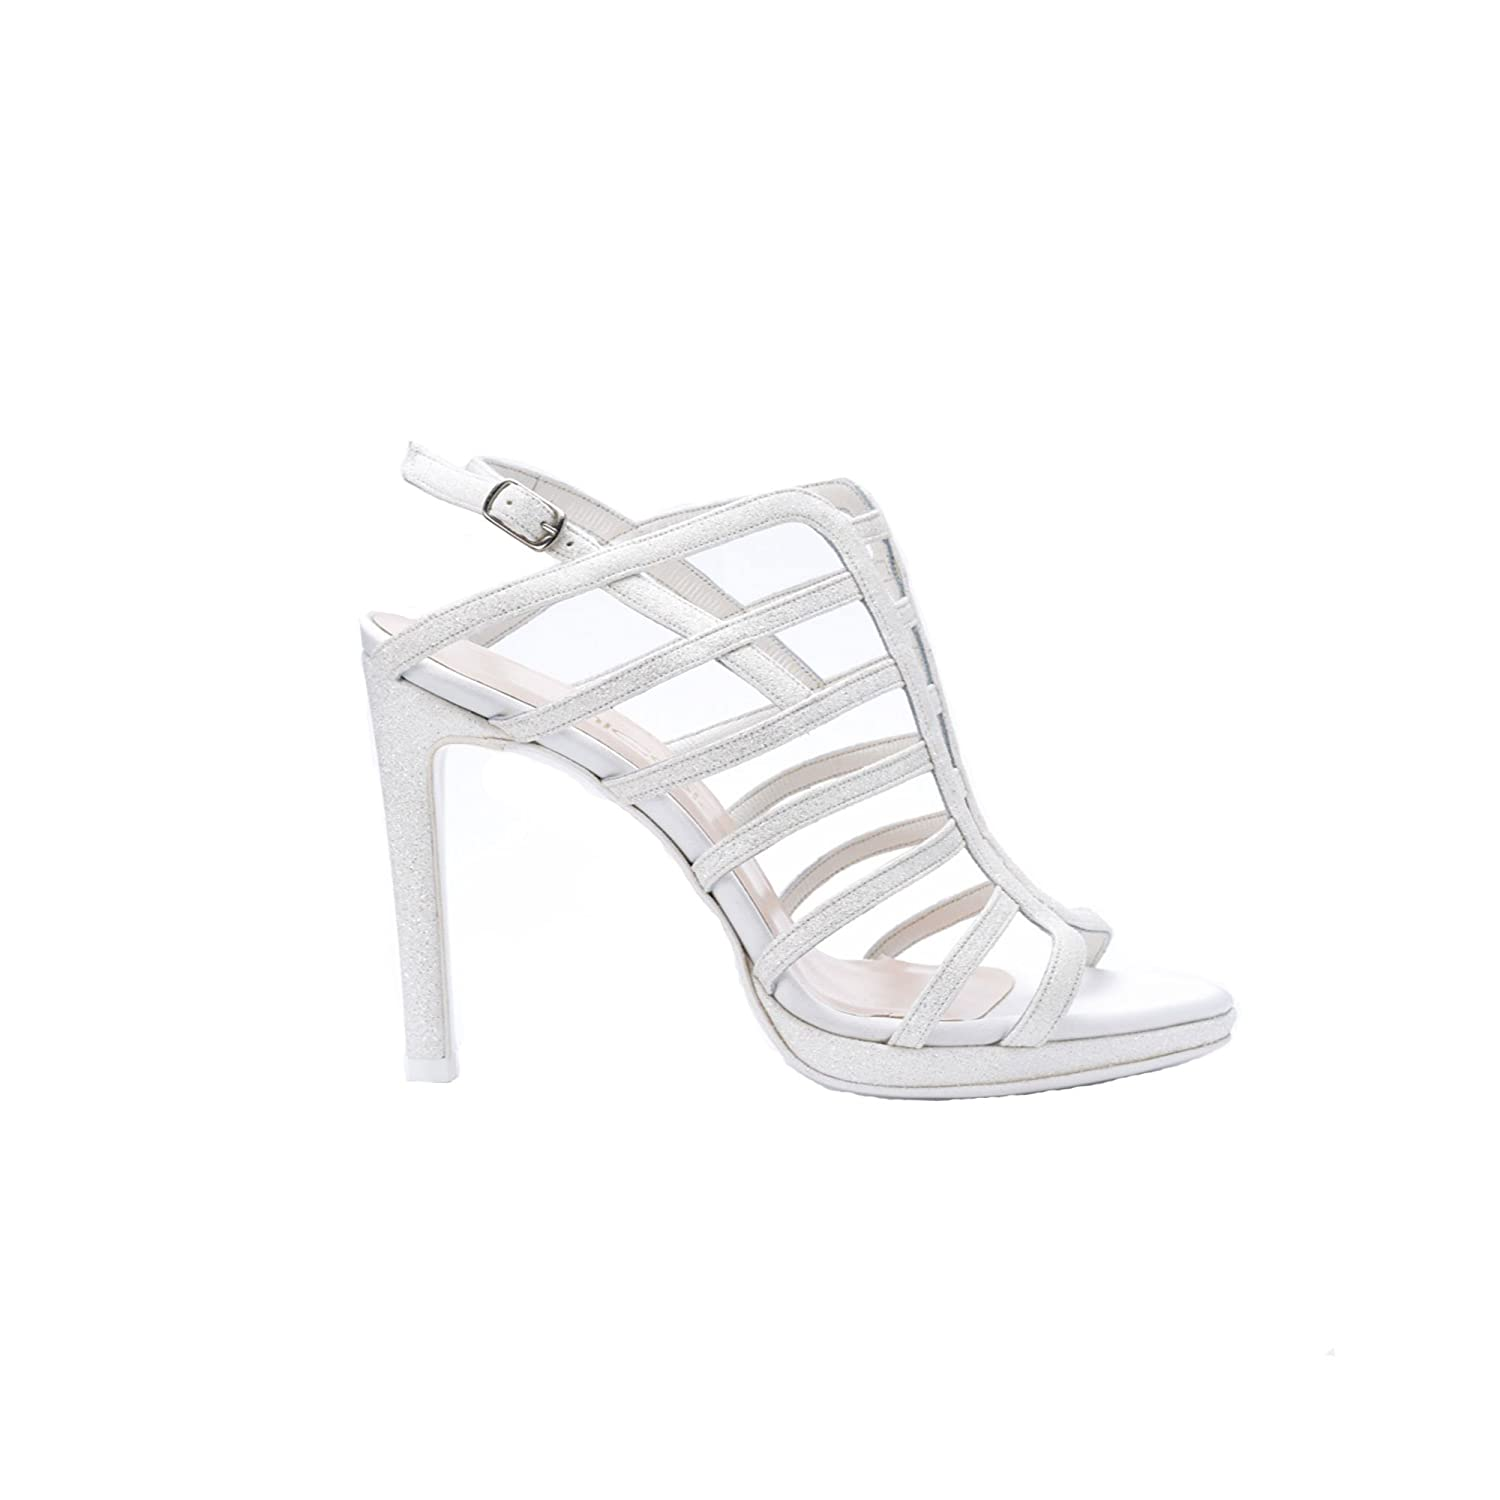 Scarpe Sposa Nicole.Nicole Scarpe Da Sposa Eleganti E Luminose Art N131 Pi Amazon It